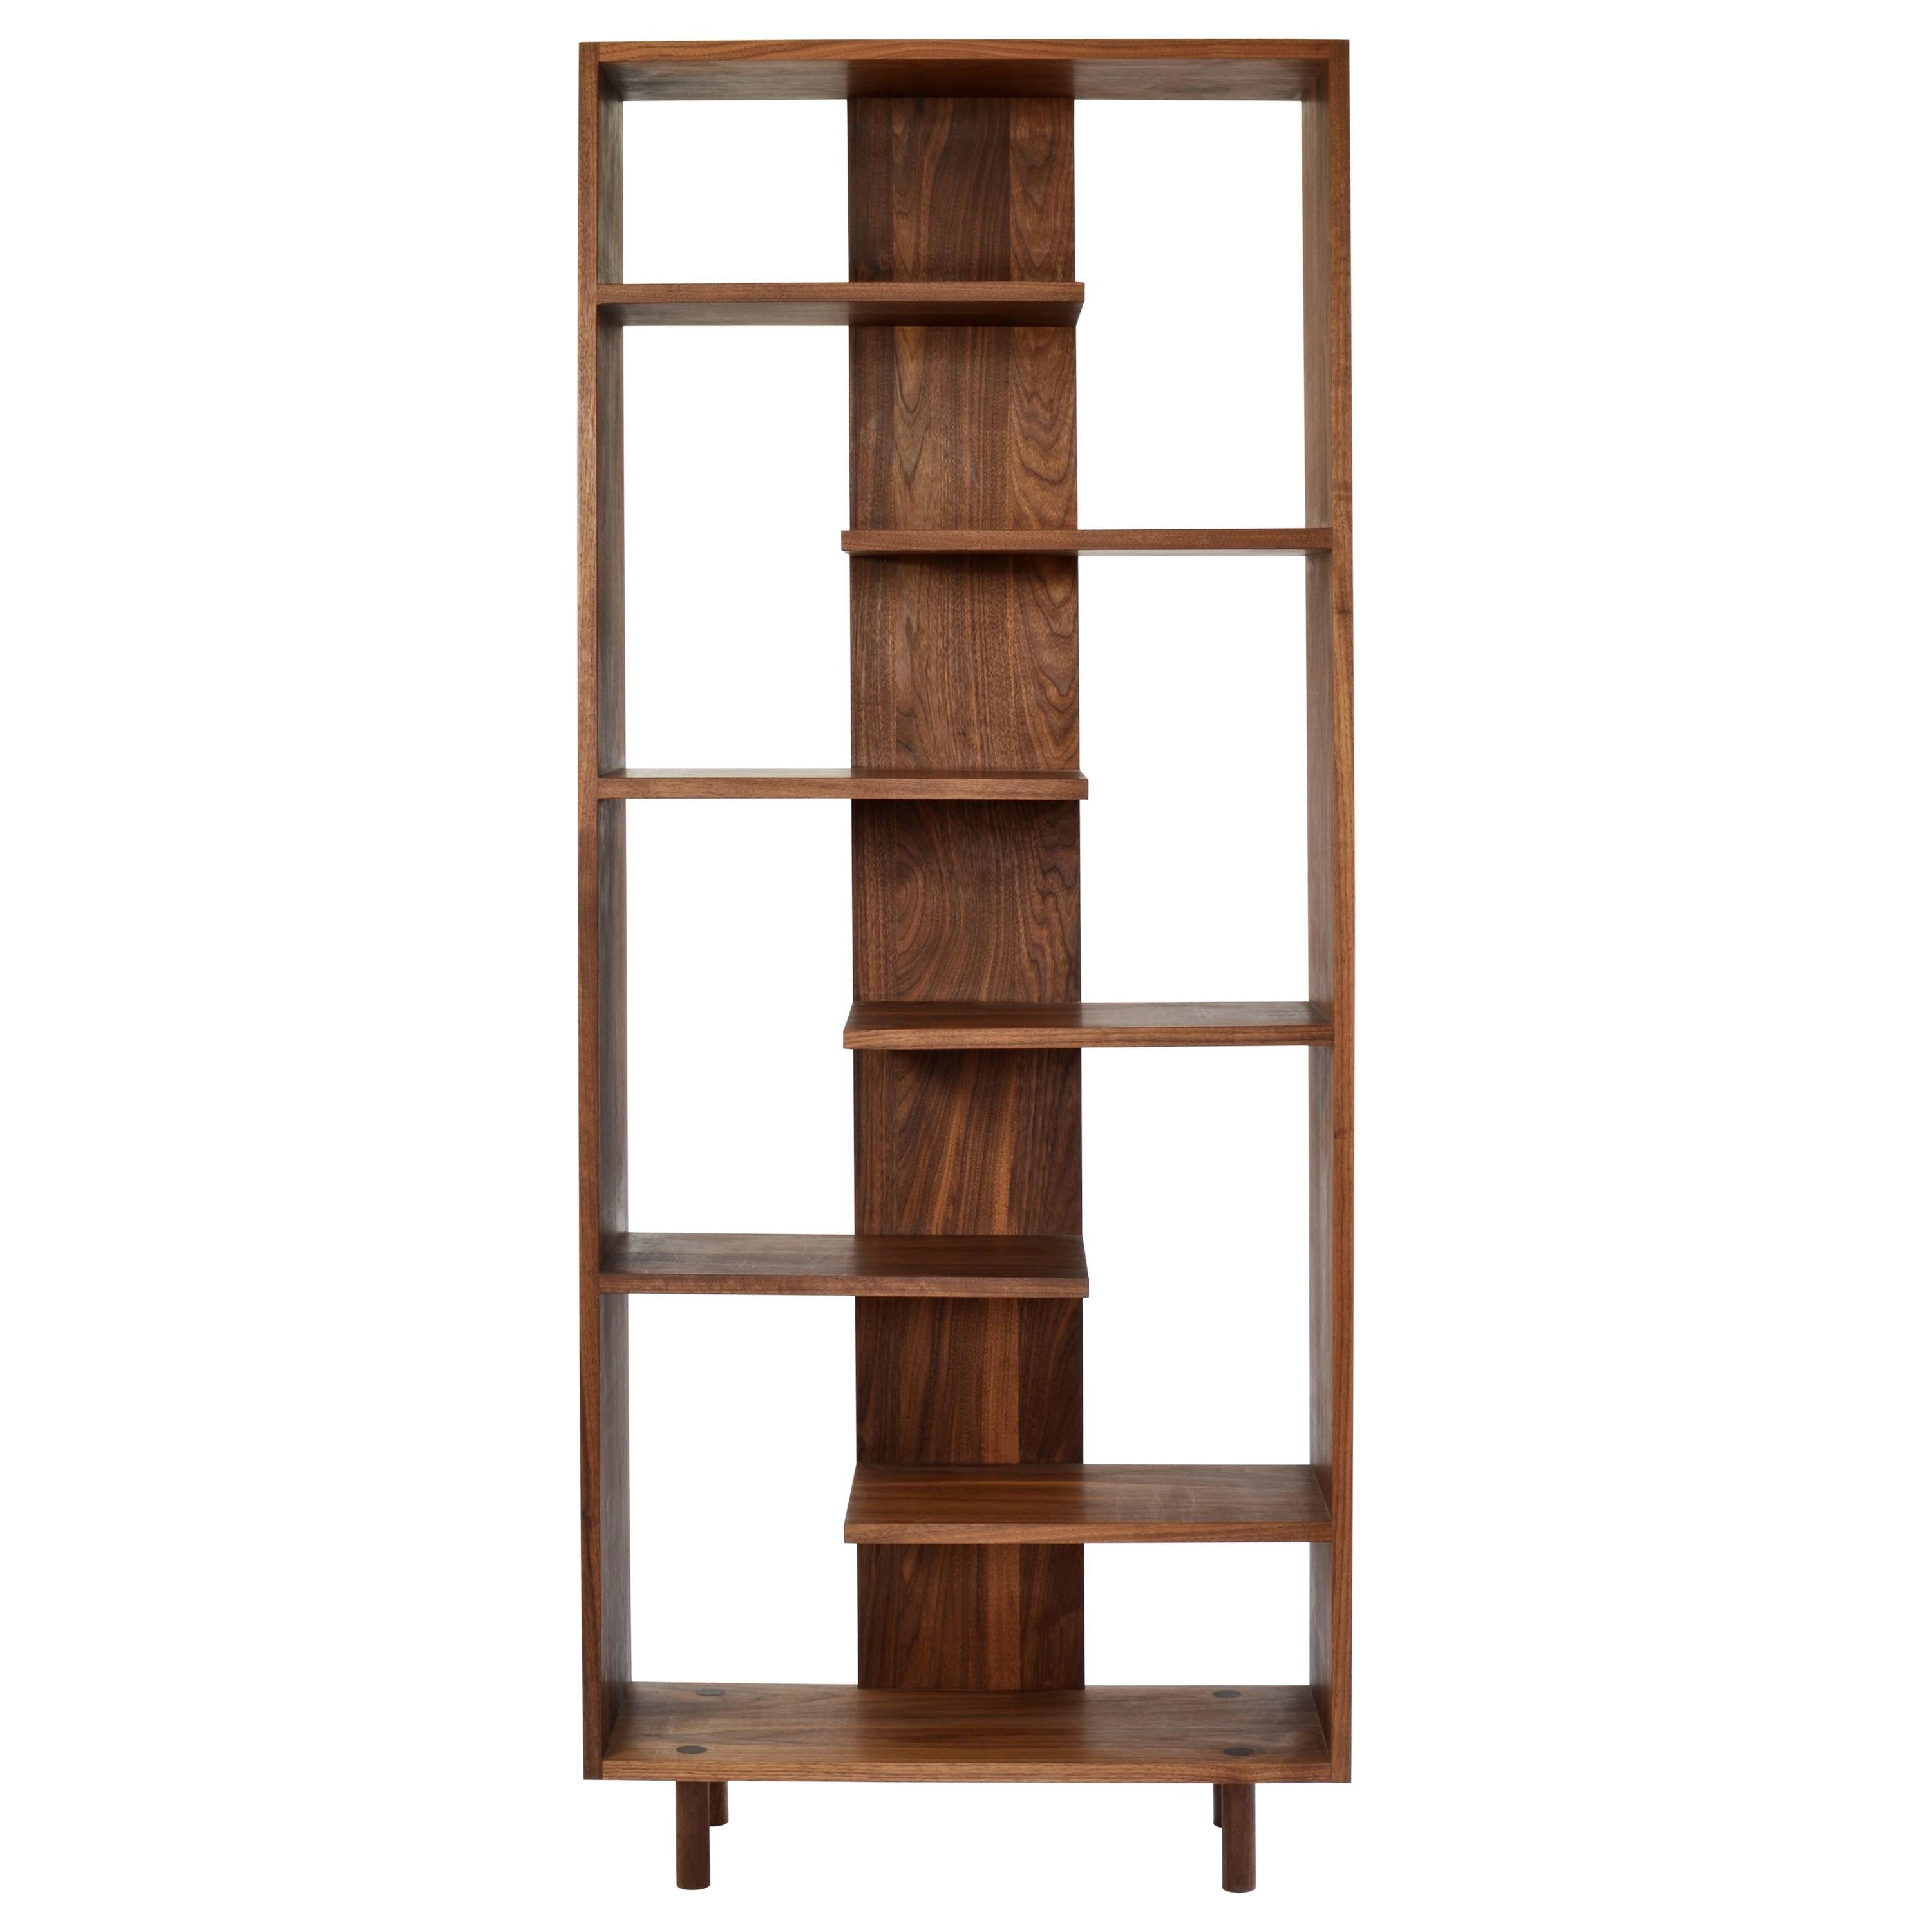 "Contemporary Shelving Room Divider ""Paso"" in Walnut by Casey Lurie USA"